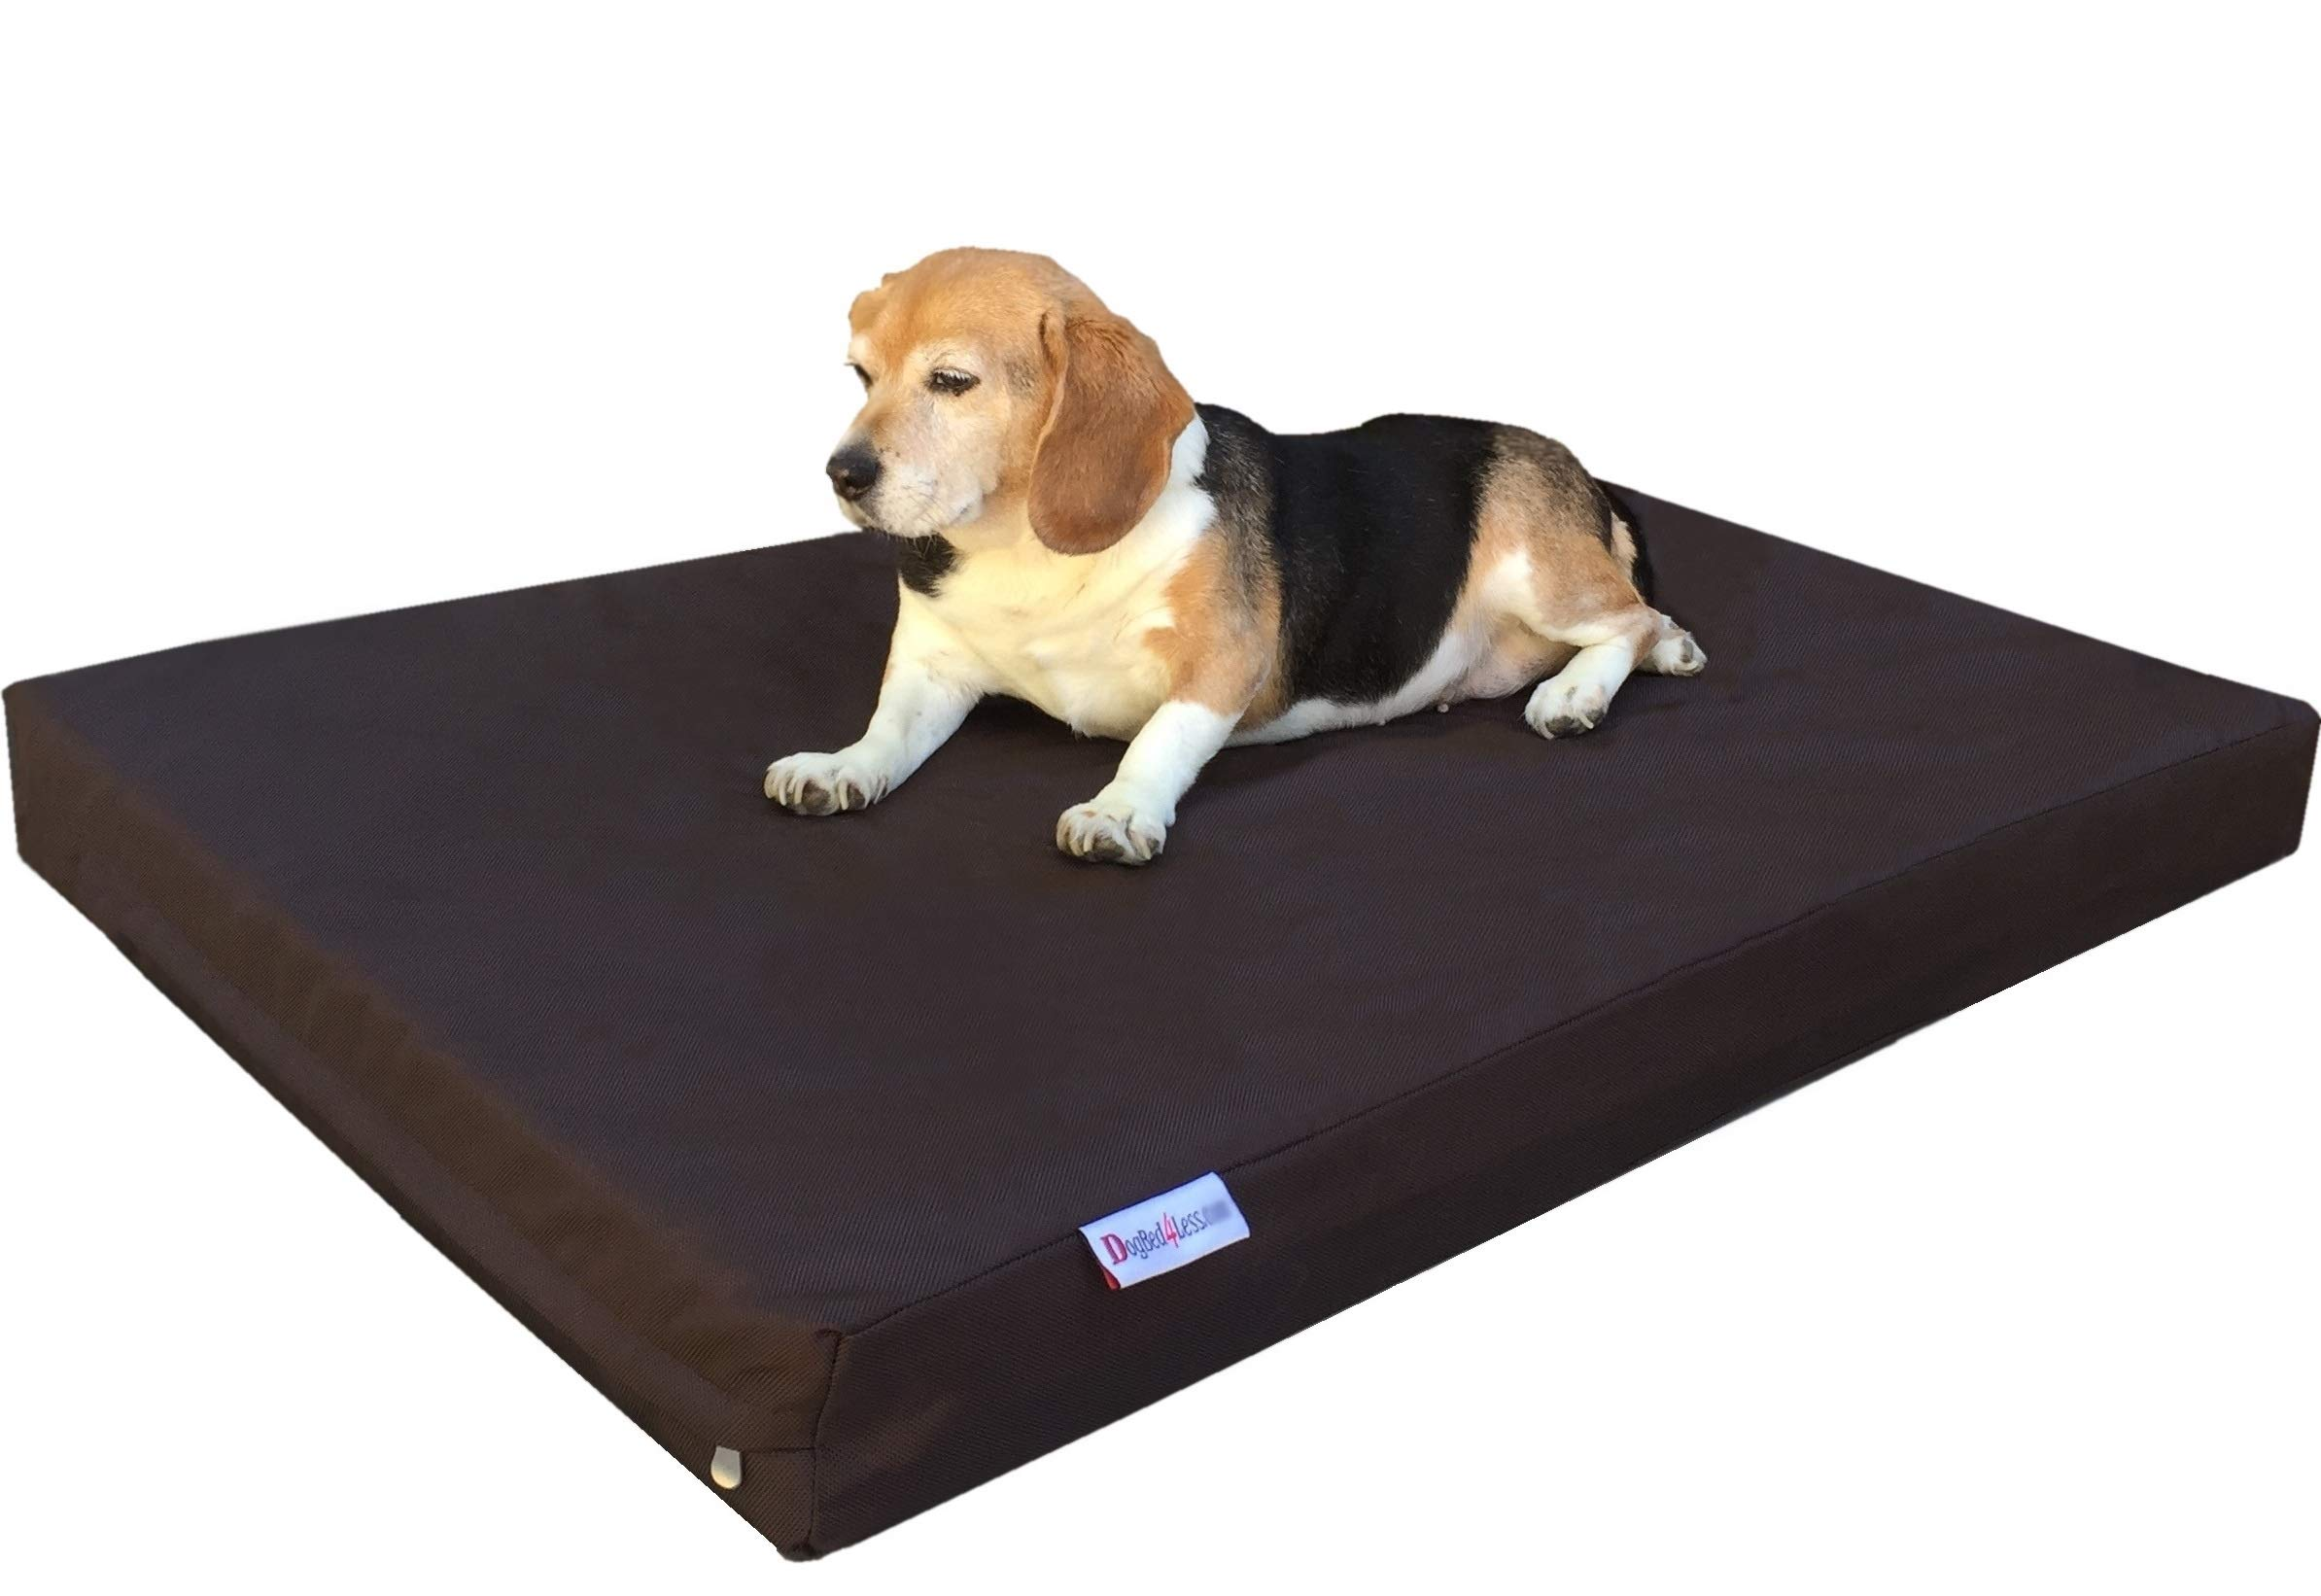 Dogbed4less Durable Large Gel Memory Foam Dog Bed with 1680 Nylon Brown Cover and Waterproof Liner with Bonus Cover, 41X27X4 Inch (Fit 42X28 Crate)